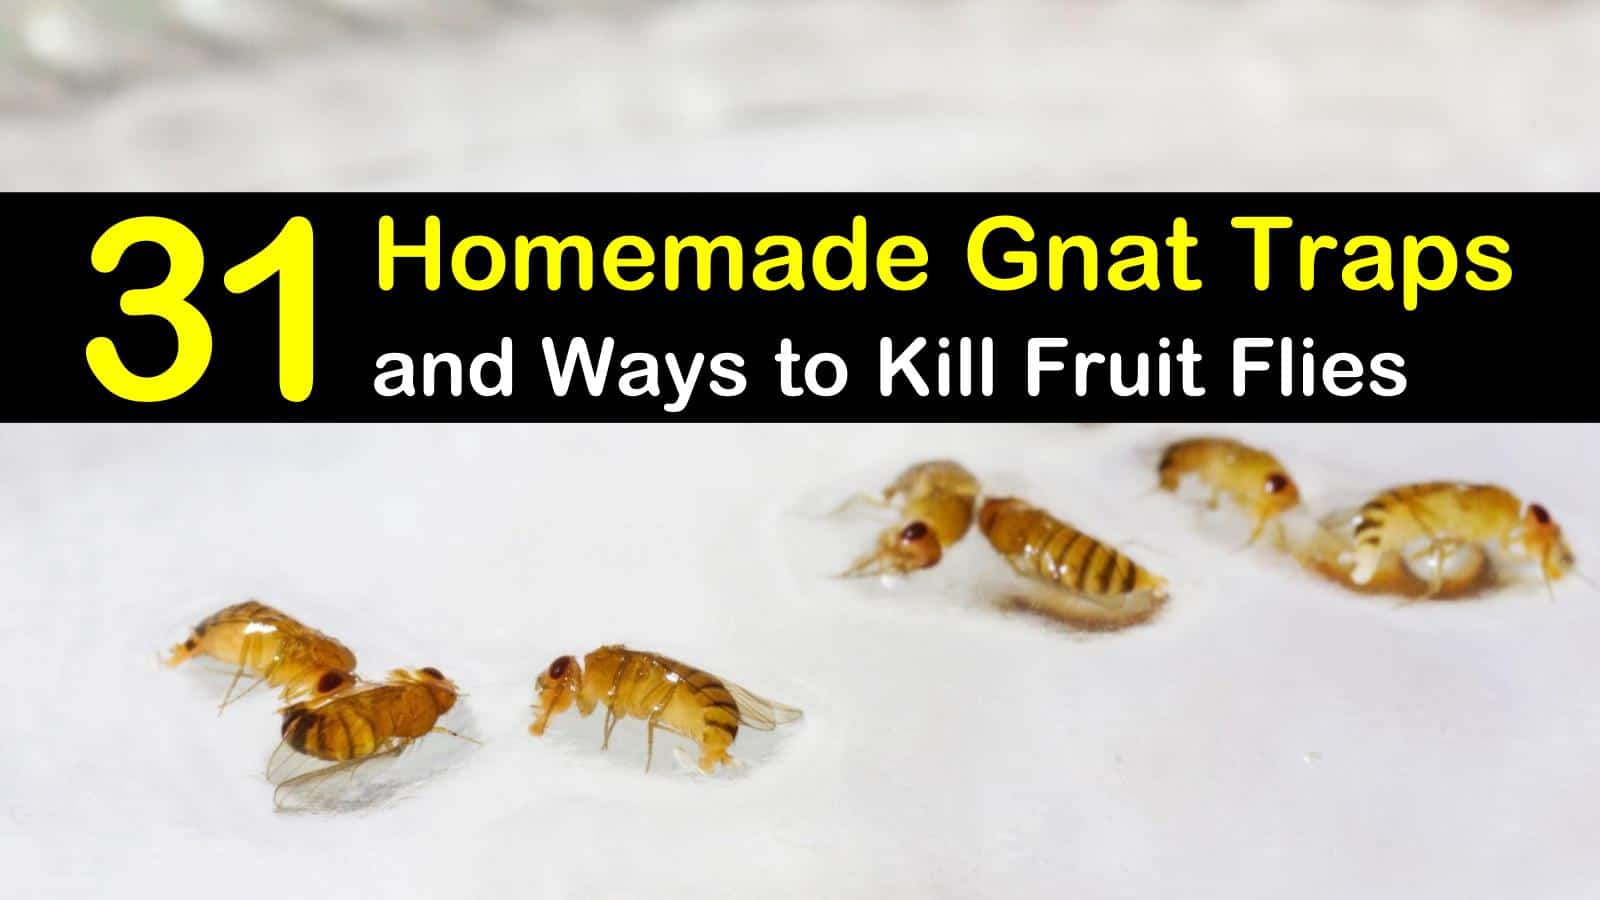 31 Homemade Gnat Traps and Ways to Kill Fruit Flies titleimg1